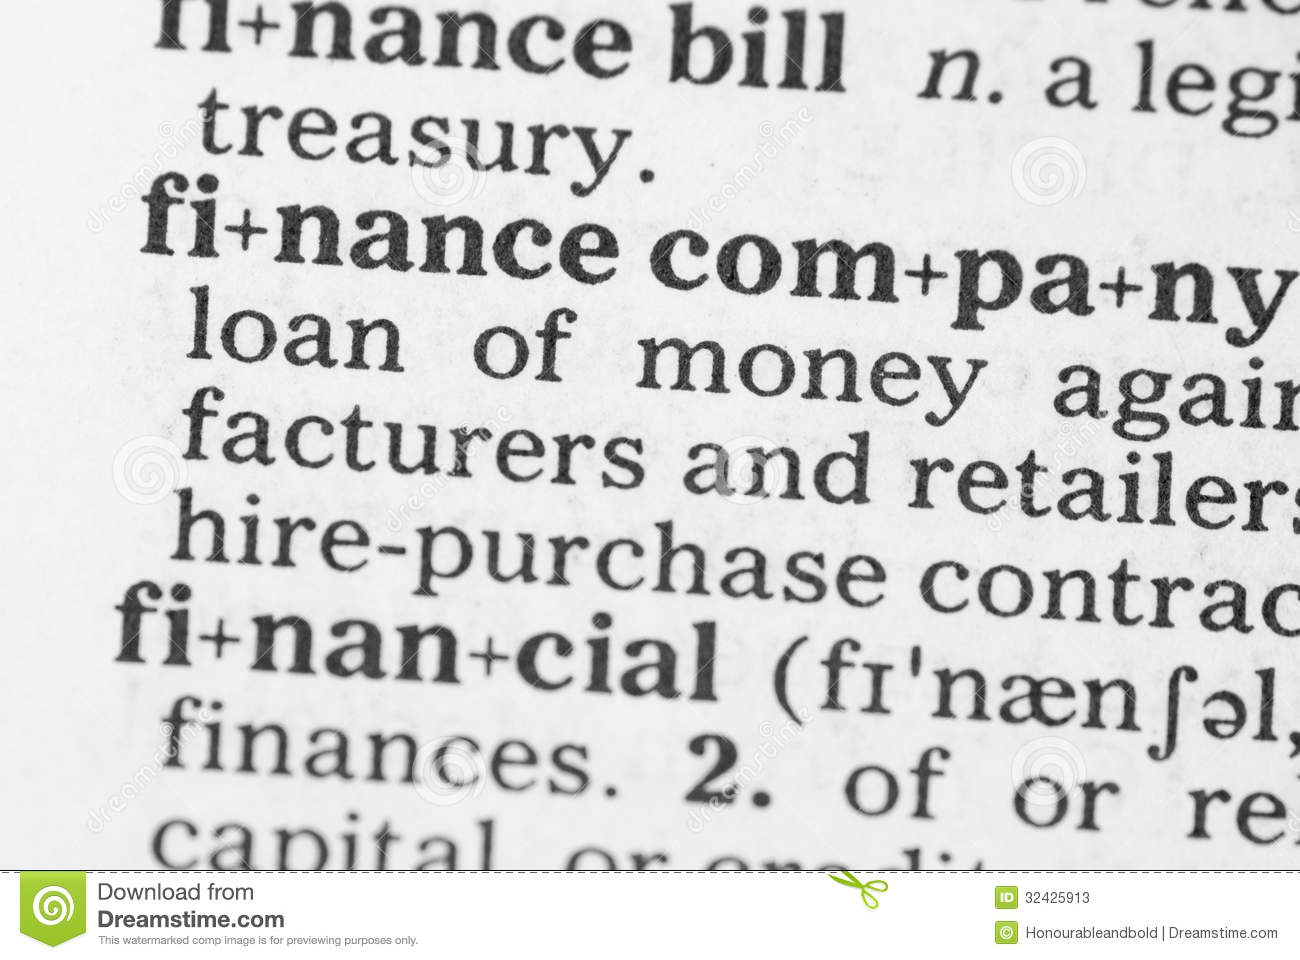 defining financial terms Definition: a written report of the financial condition of a firm financial statements include the balance sheet, income statement, statement of changes in net worth and statement of cash flow the first step in developing a financial management system is the creation of financial statements to.